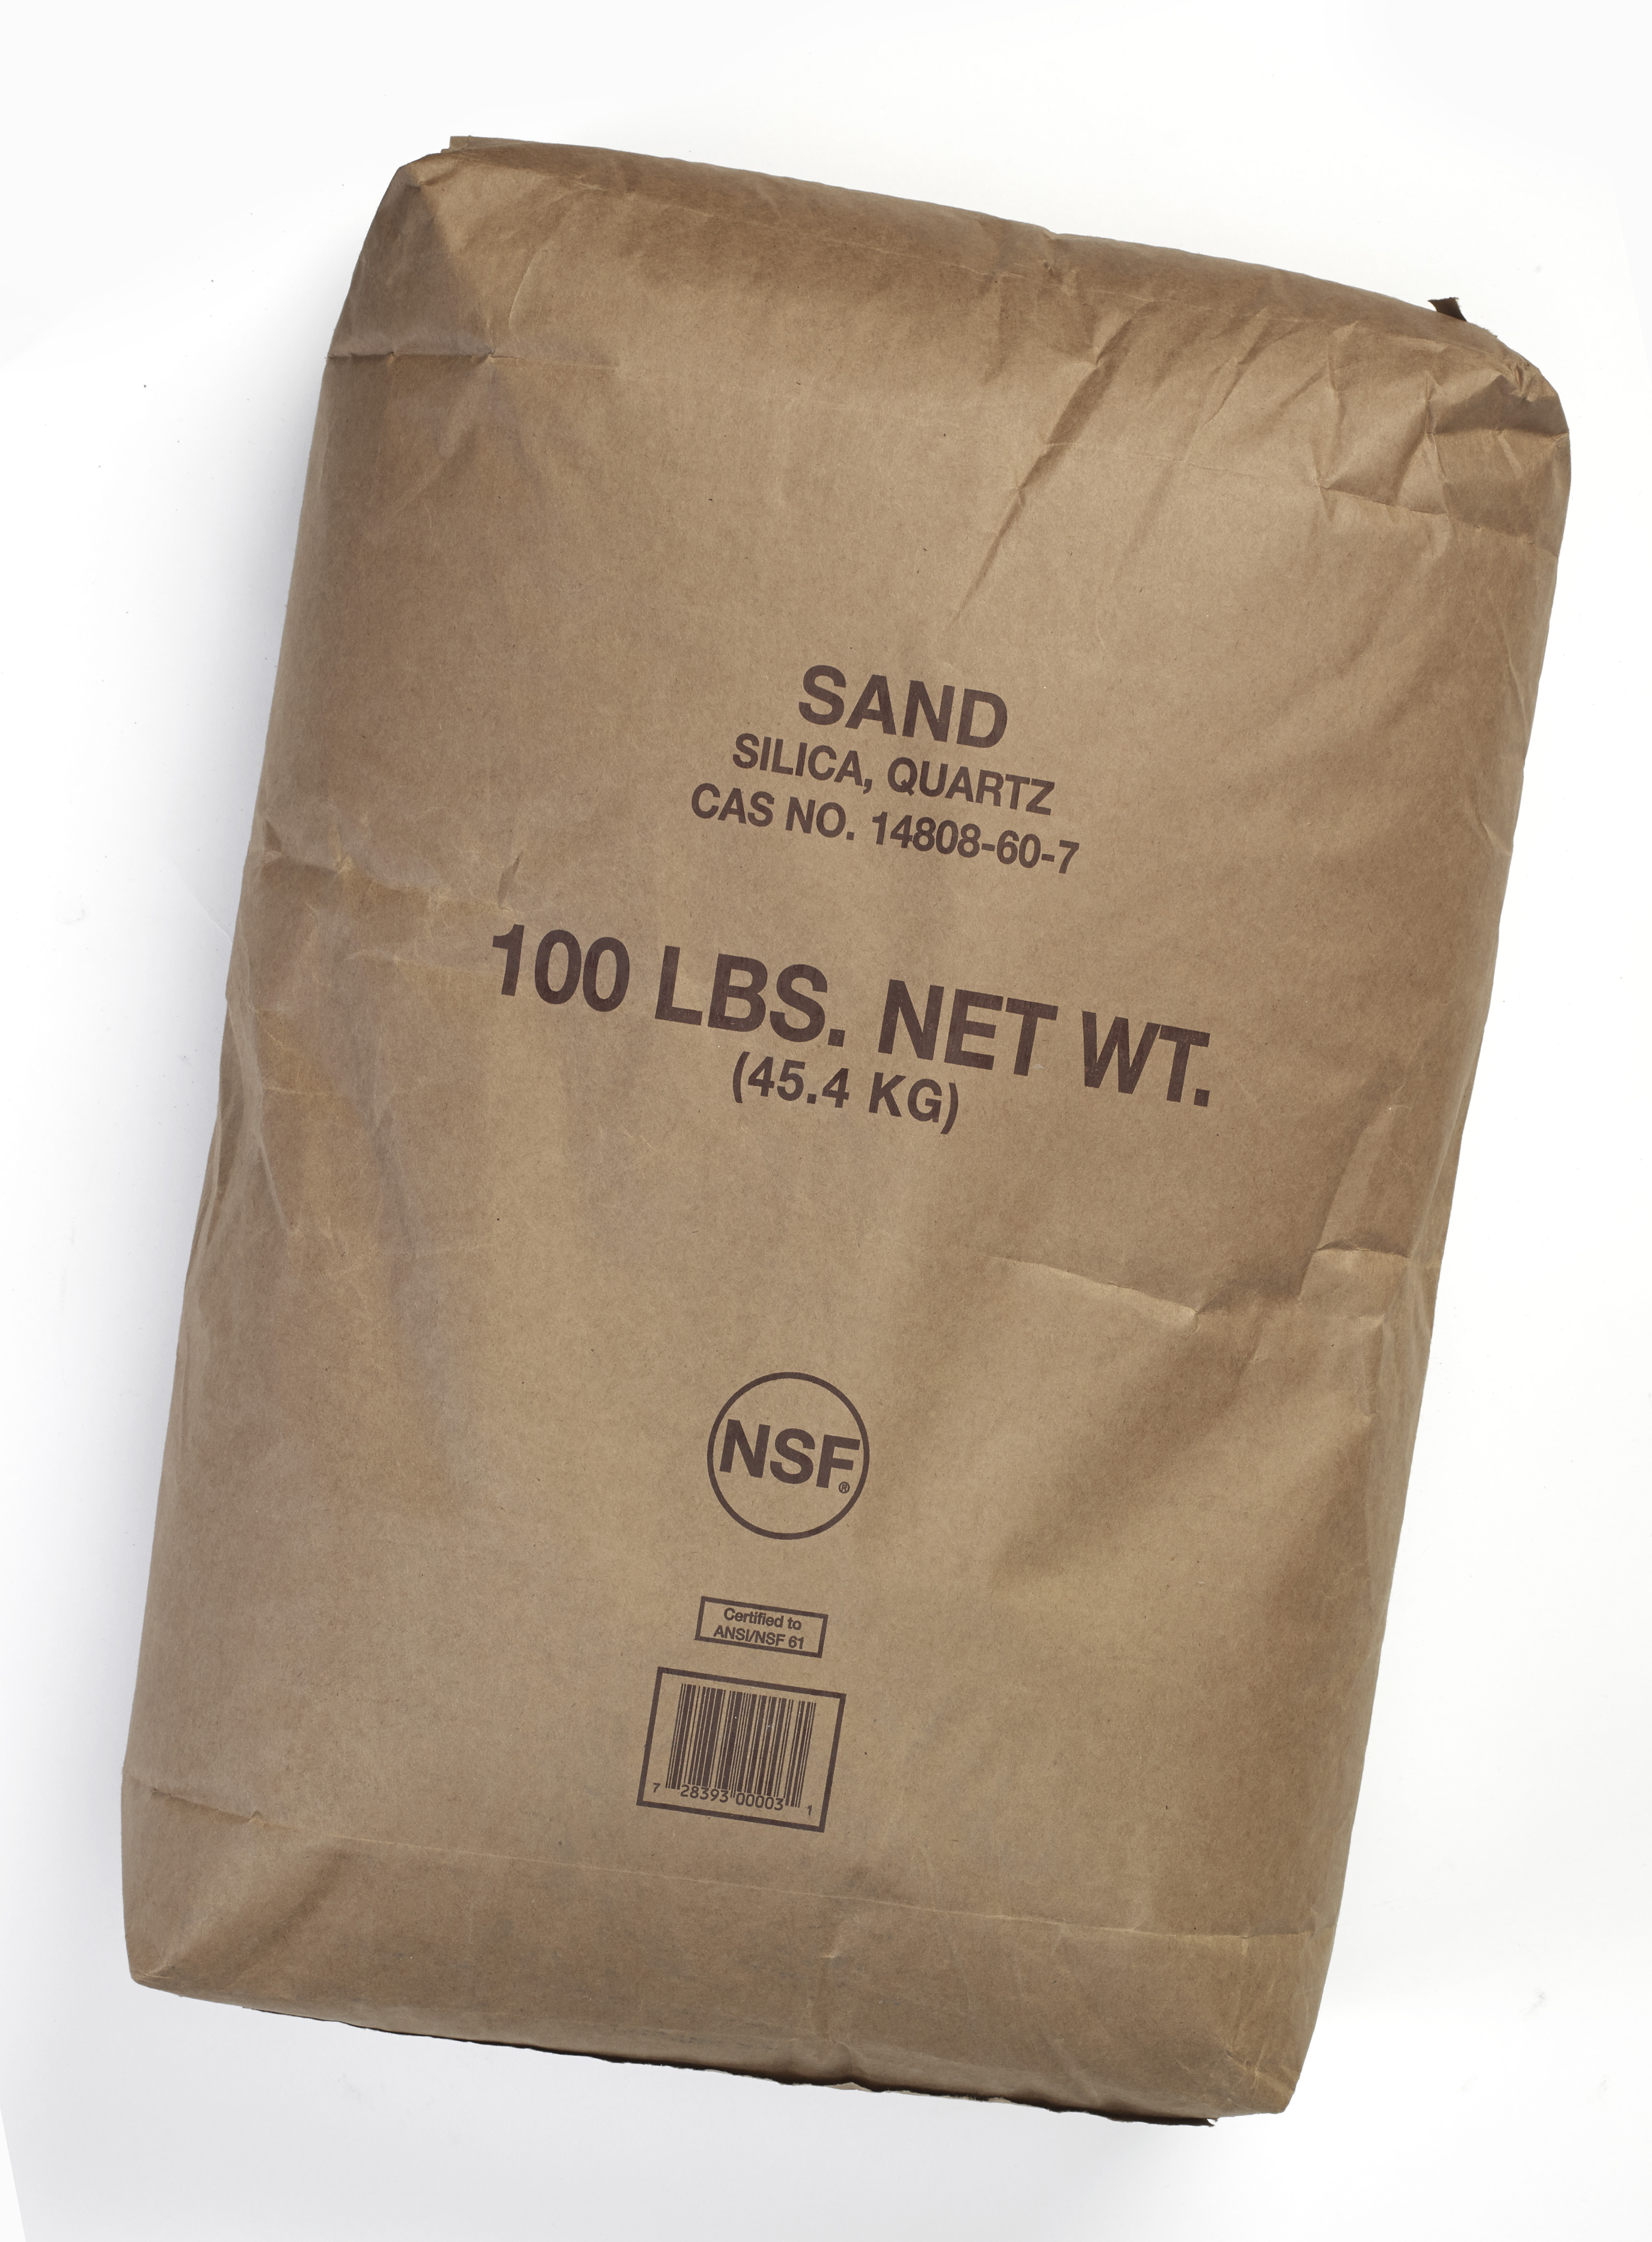 900293-0-0, 3 Blast Sand, Mutual Industries